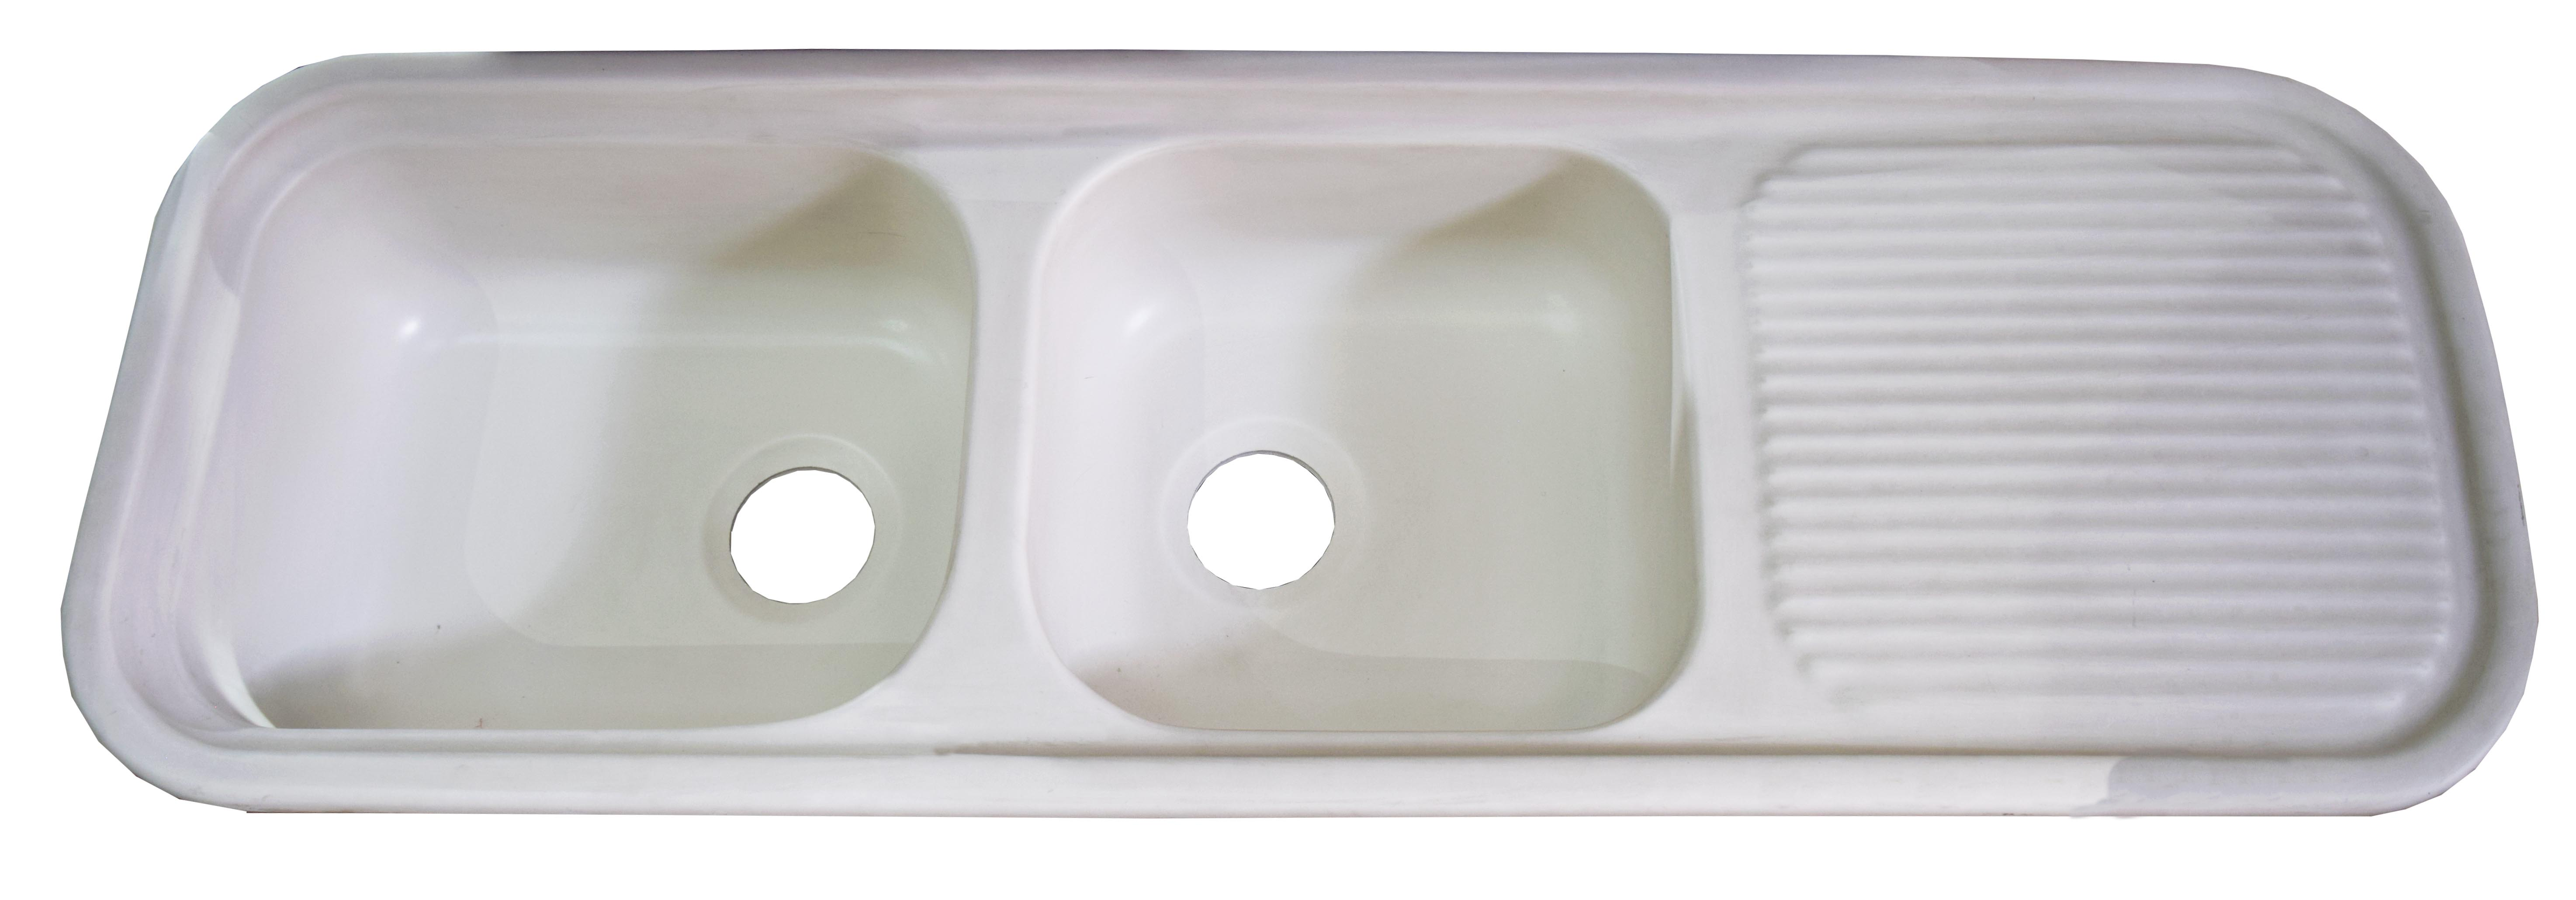 plastic kitchen sink